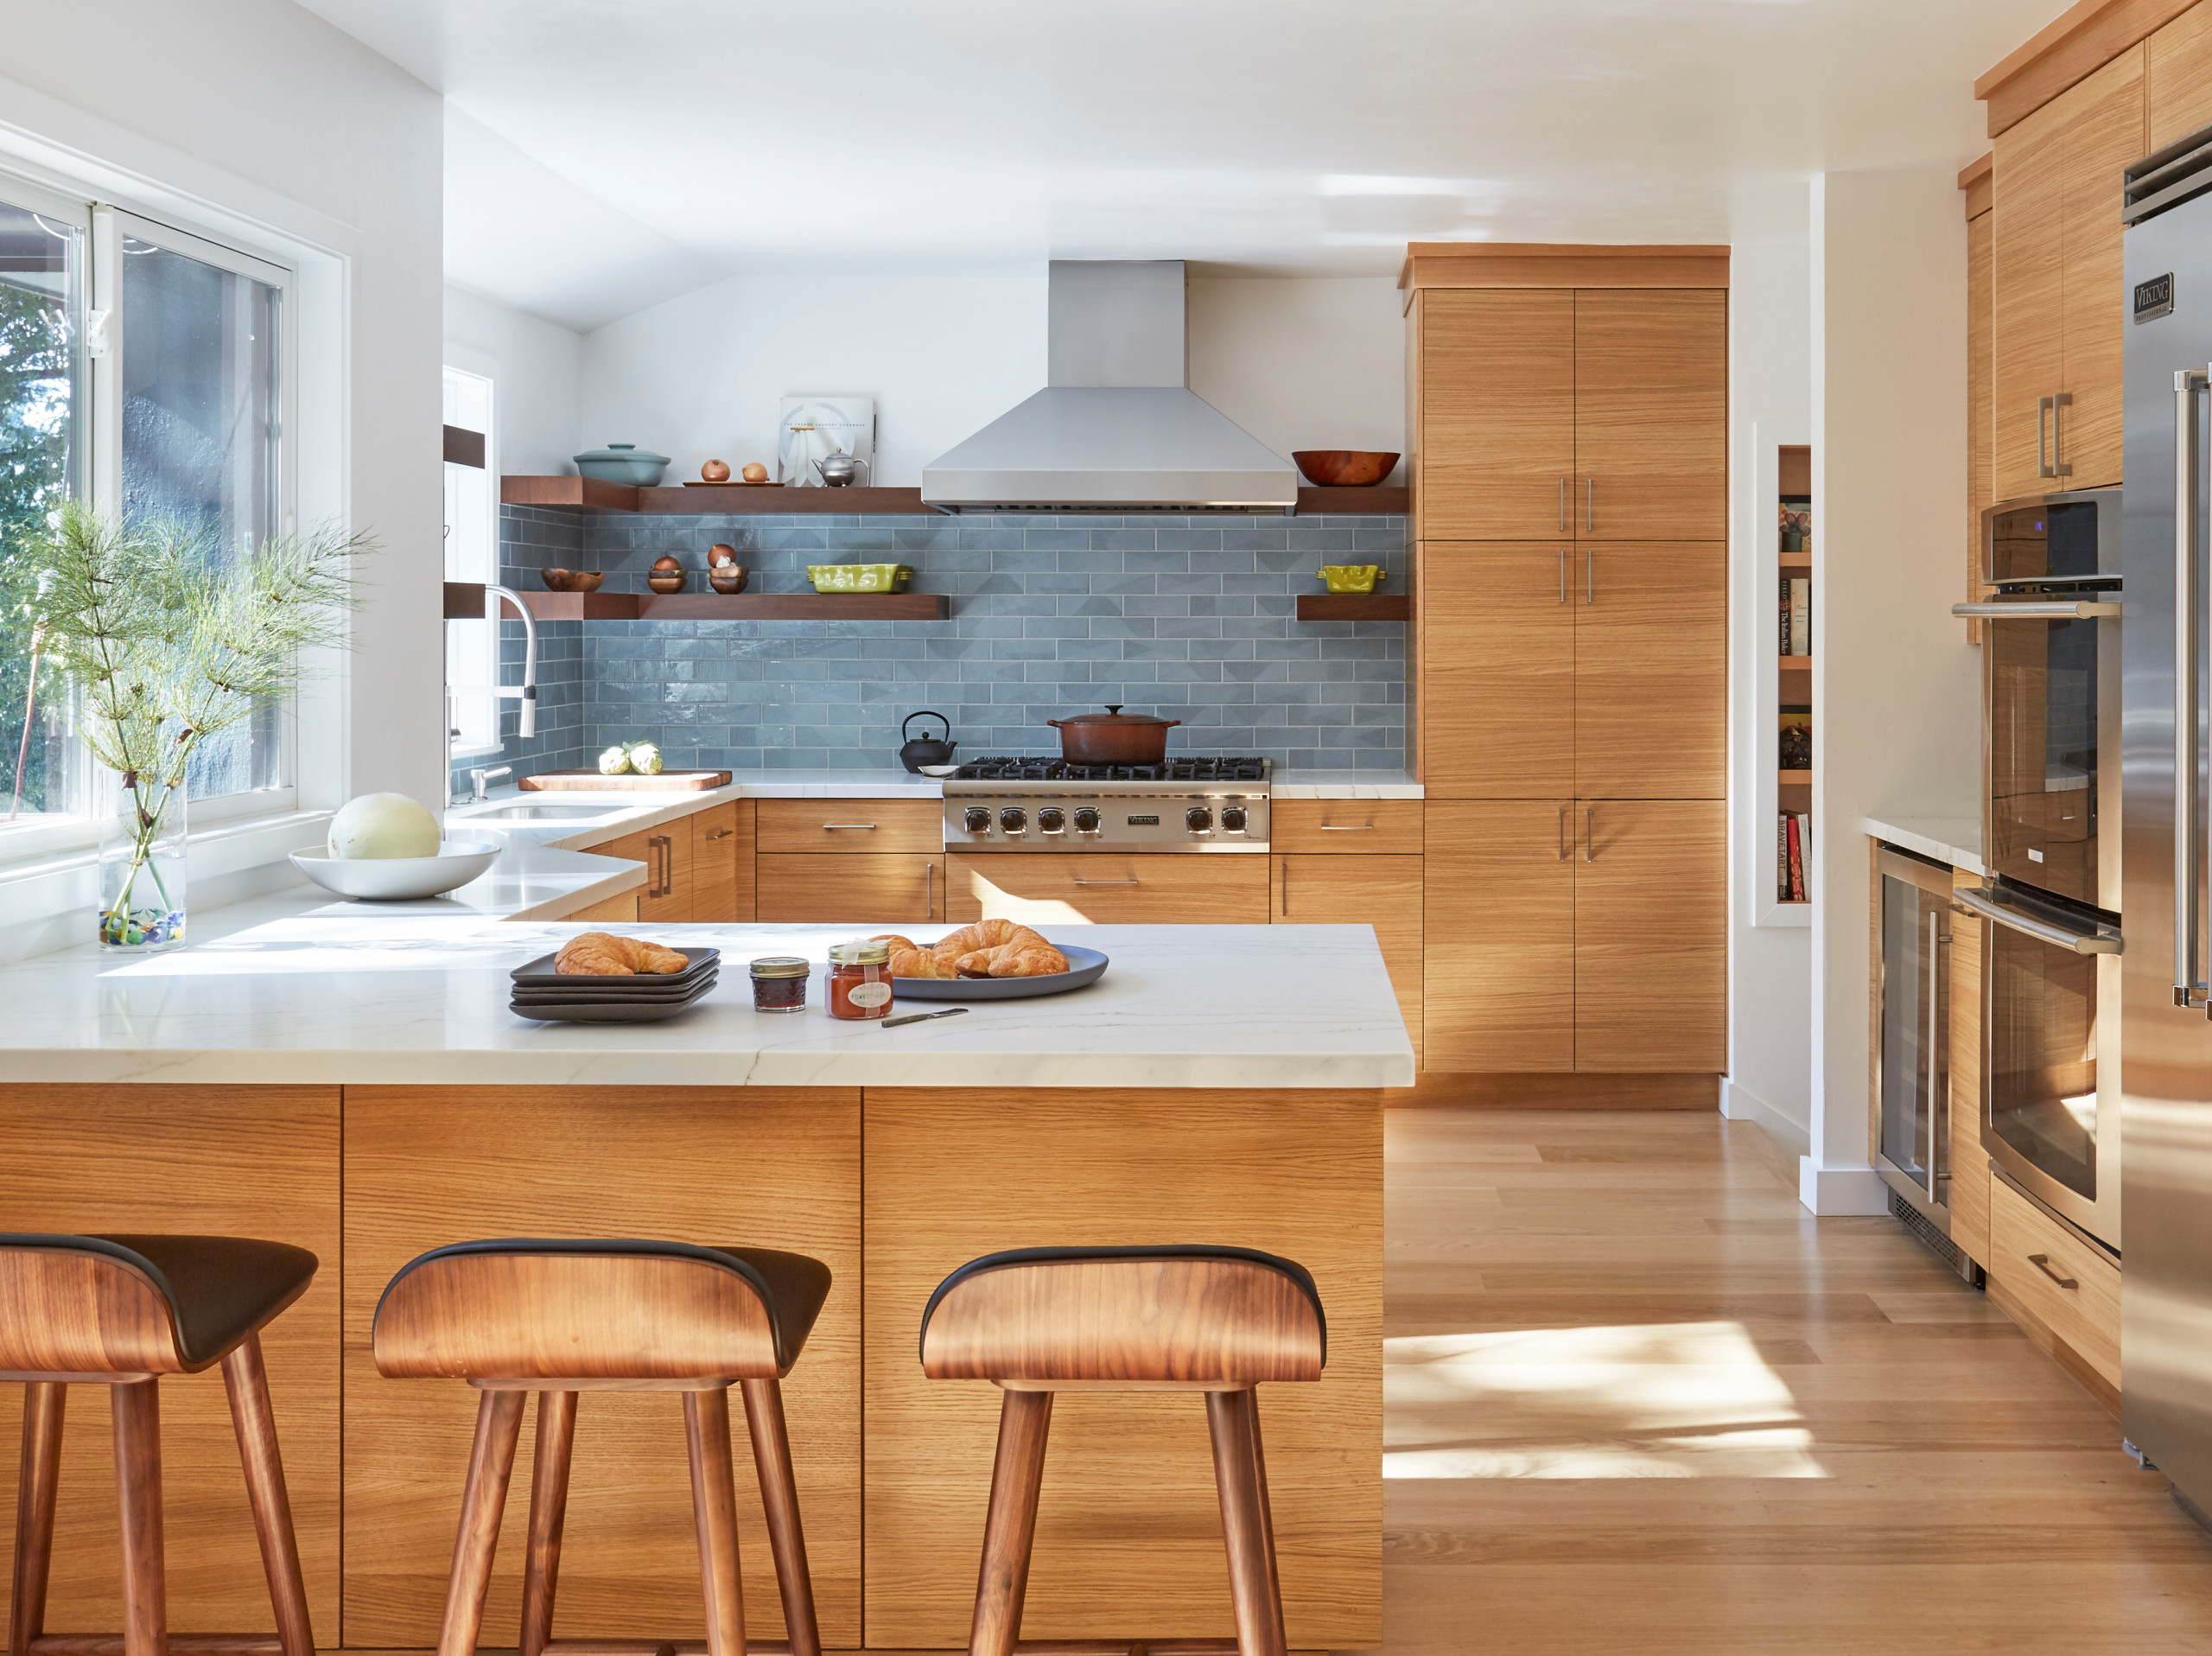 75 Beautiful Brown Kitchen Pictures Ideas February 2021 Houzz